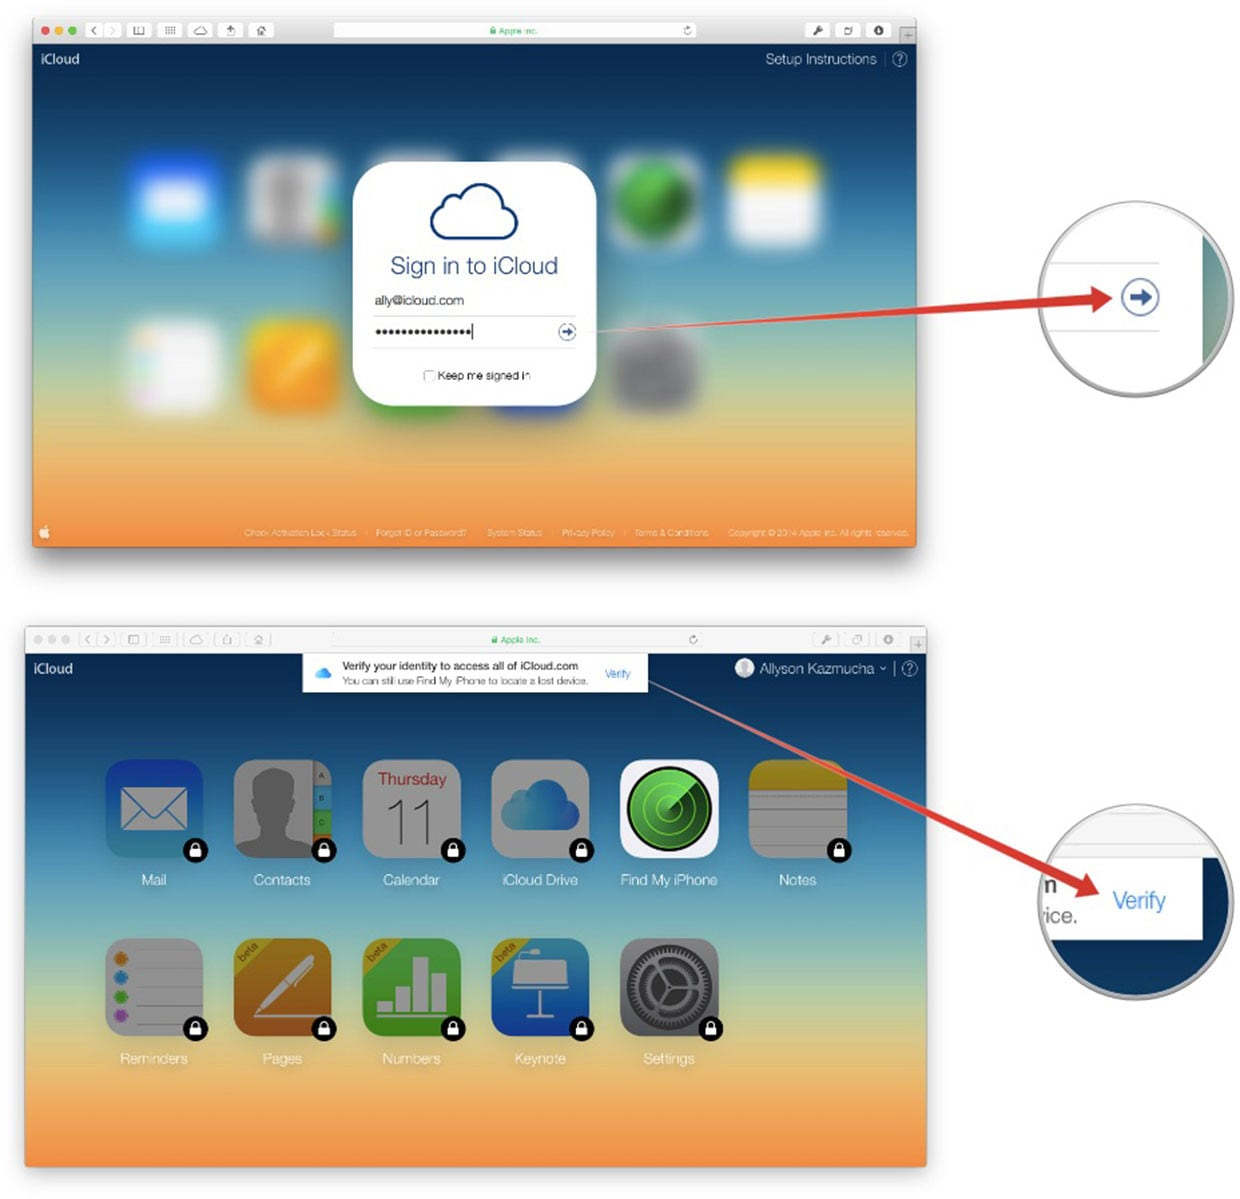 icloud_signin_online_updated_howto_1